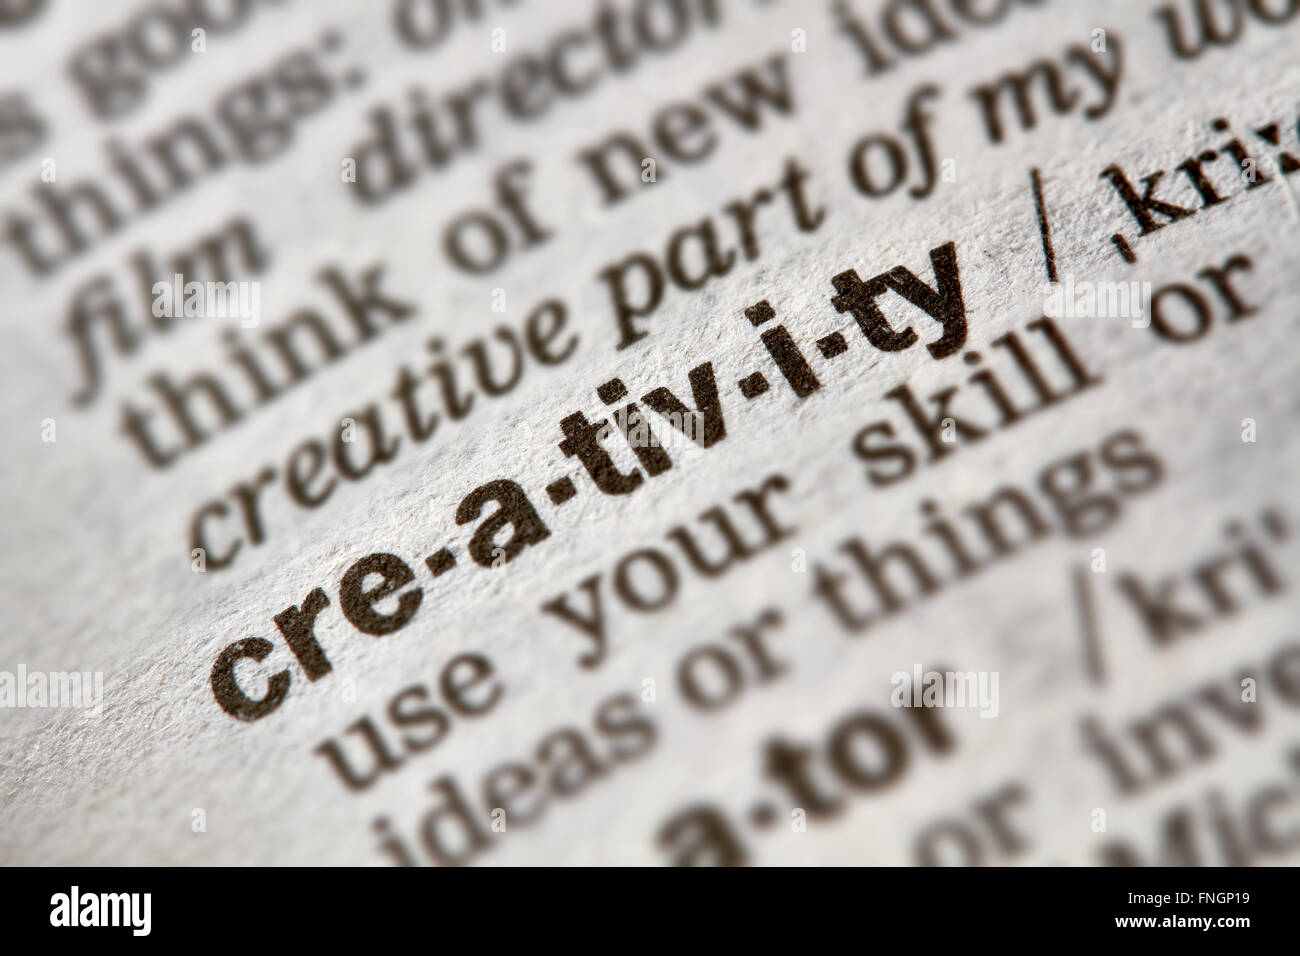 Creativity Word Definition Text in Dictionary Page - Stock Image